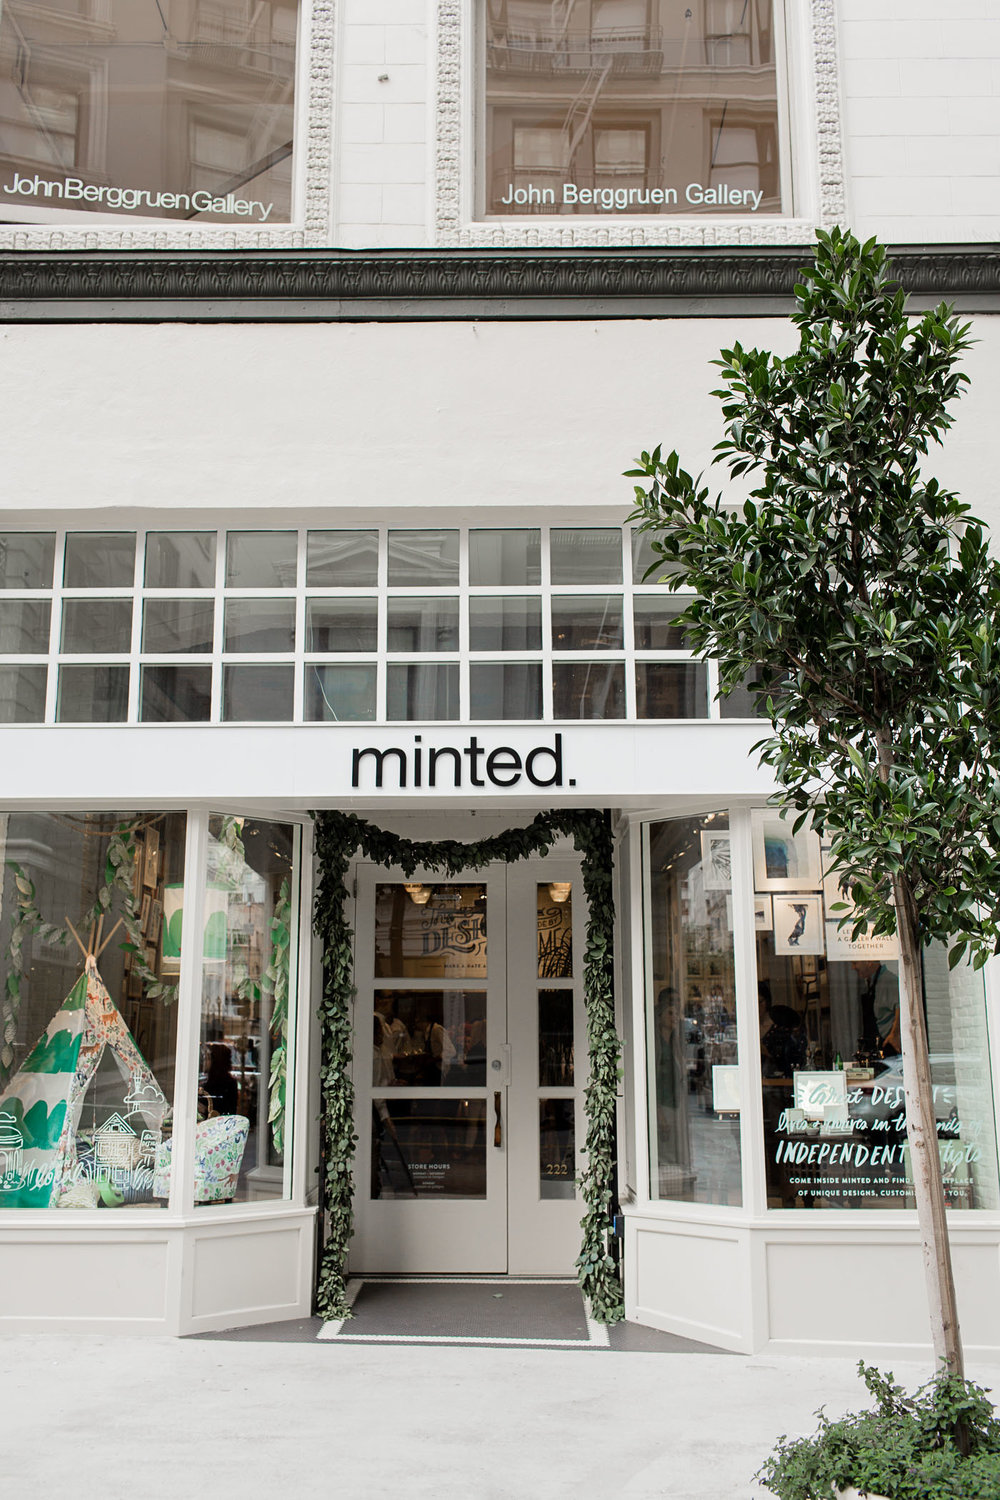 I've been a fan of Minted for years. Bringing the beauty of Minted online offline has been such a game changer. As someone who loves picking up pieces, looking at them in-person, etc. this store is the perfect place to discover and get inspired. Even better? They have events like live art nights and a stylist bar to help bring your vision to real-life!